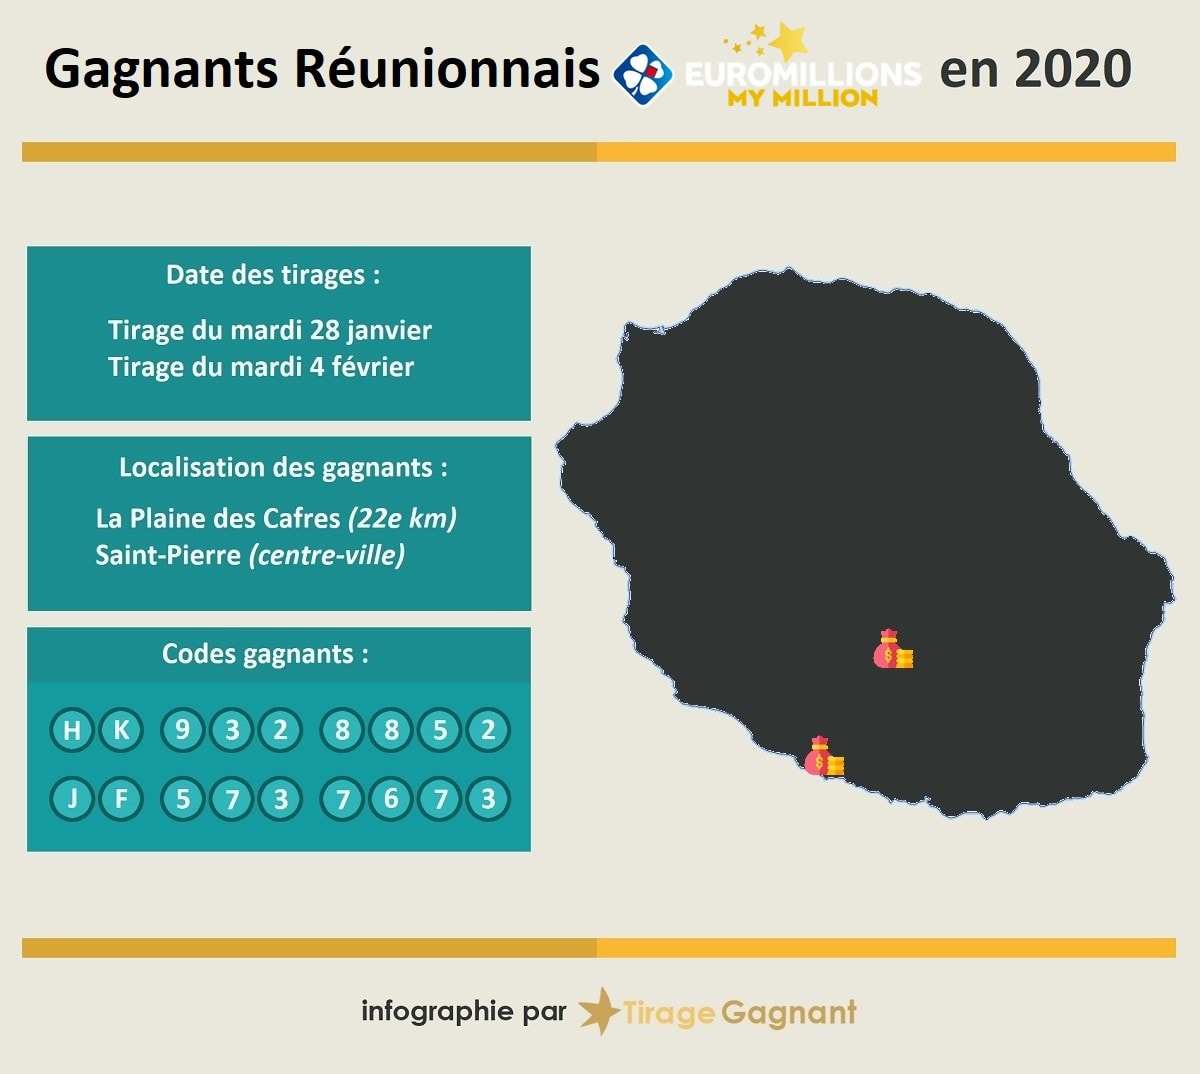 Gagnants My Million à la Réunion en 2020